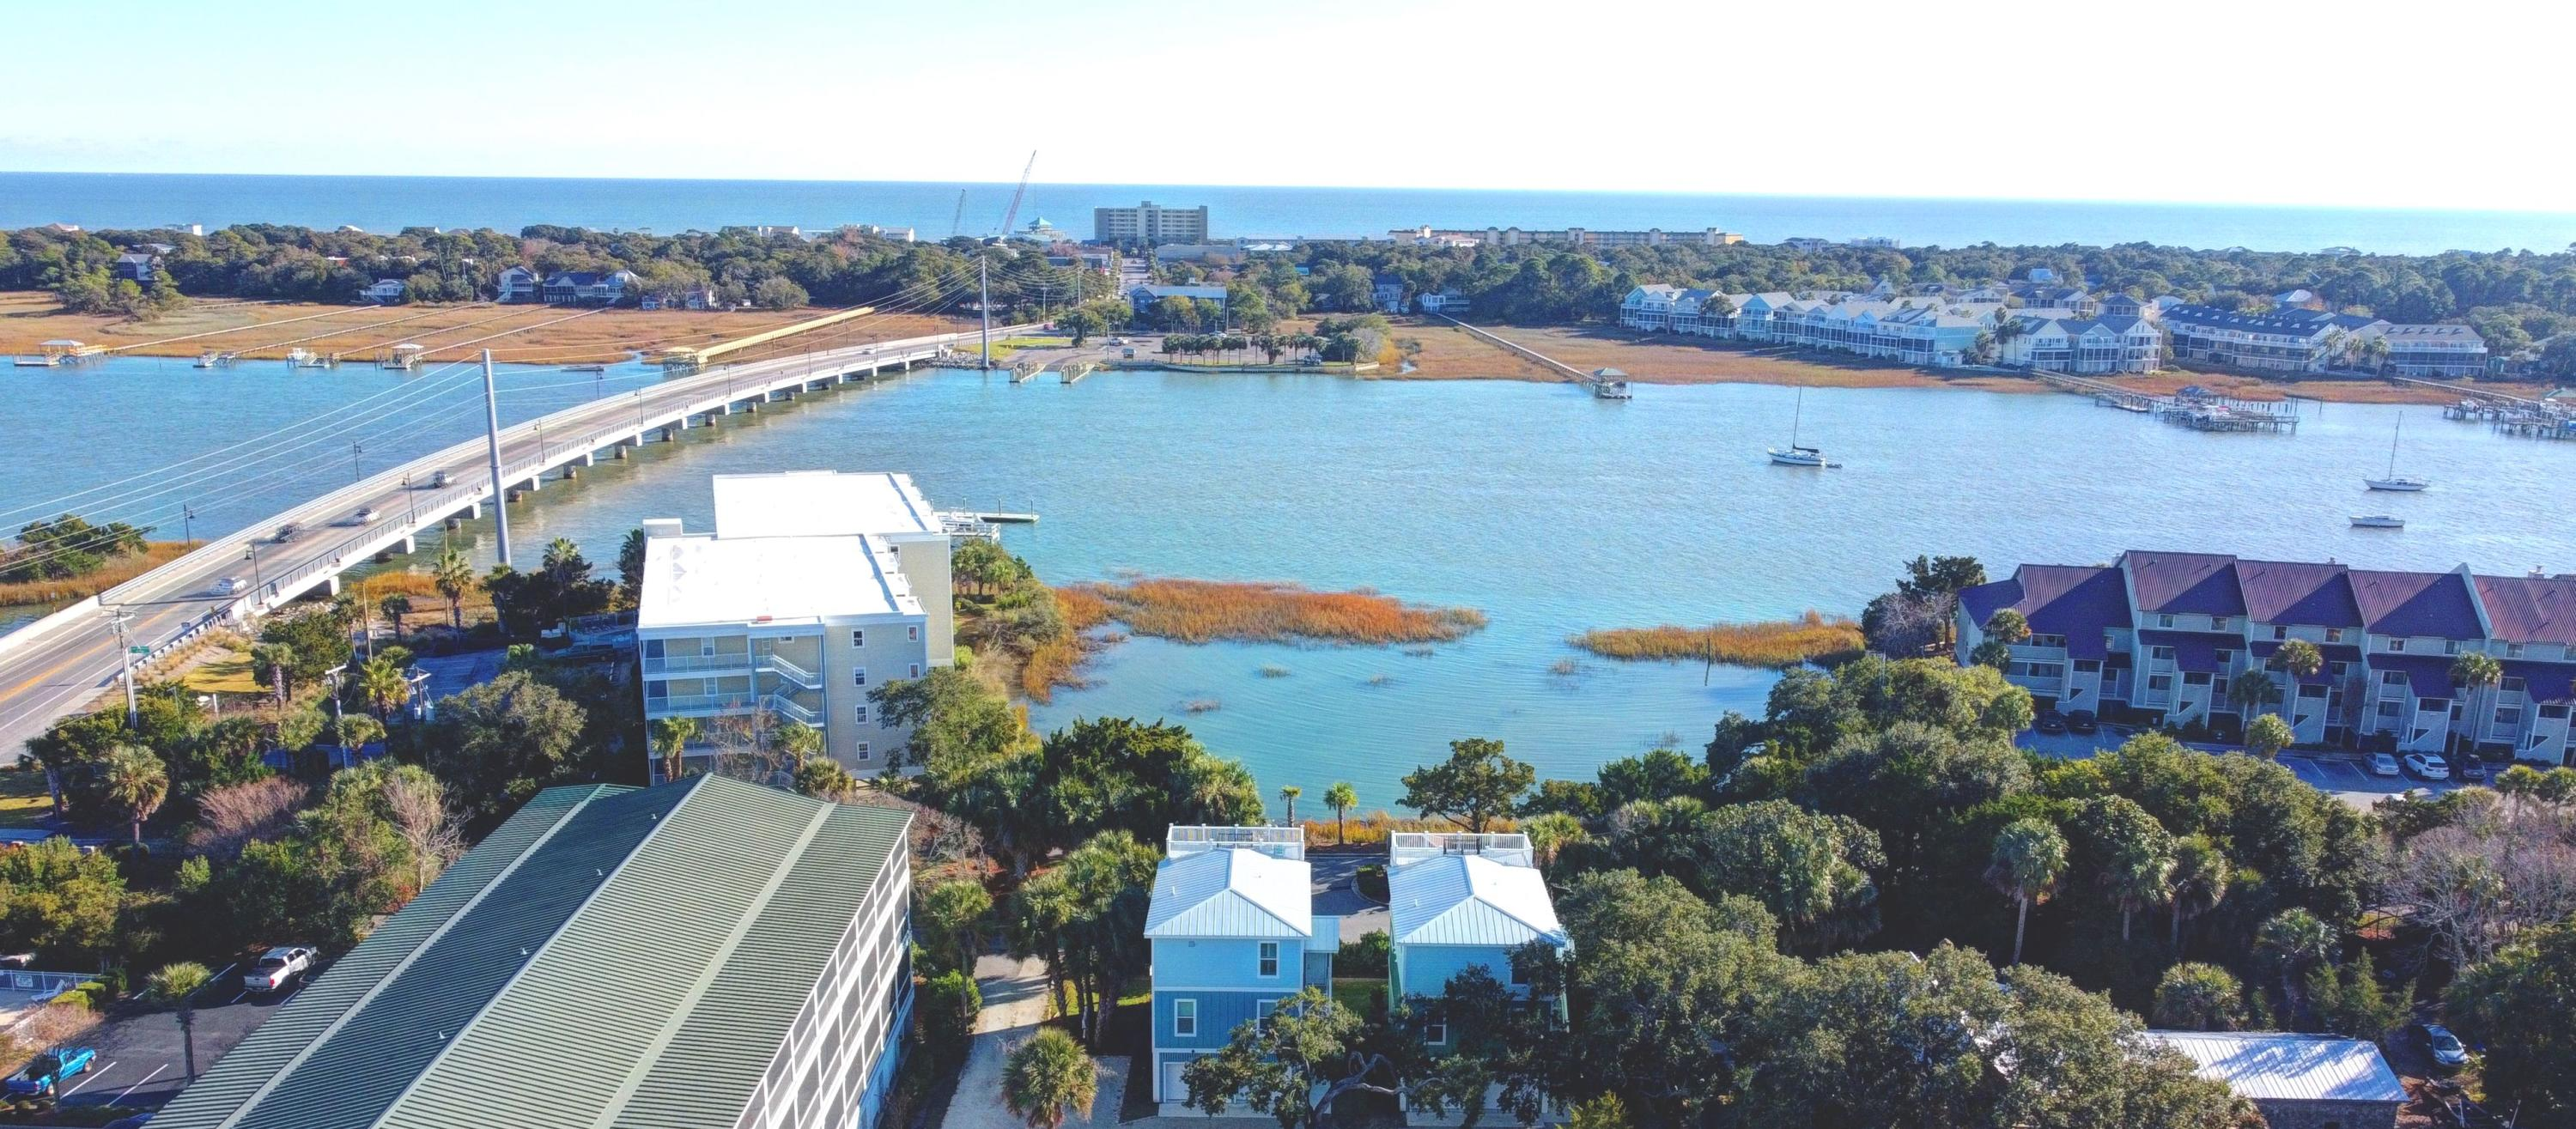 Mariners Cay Homes For Sale - 1004 Mariners Cay, Folly Beach, SC - 11